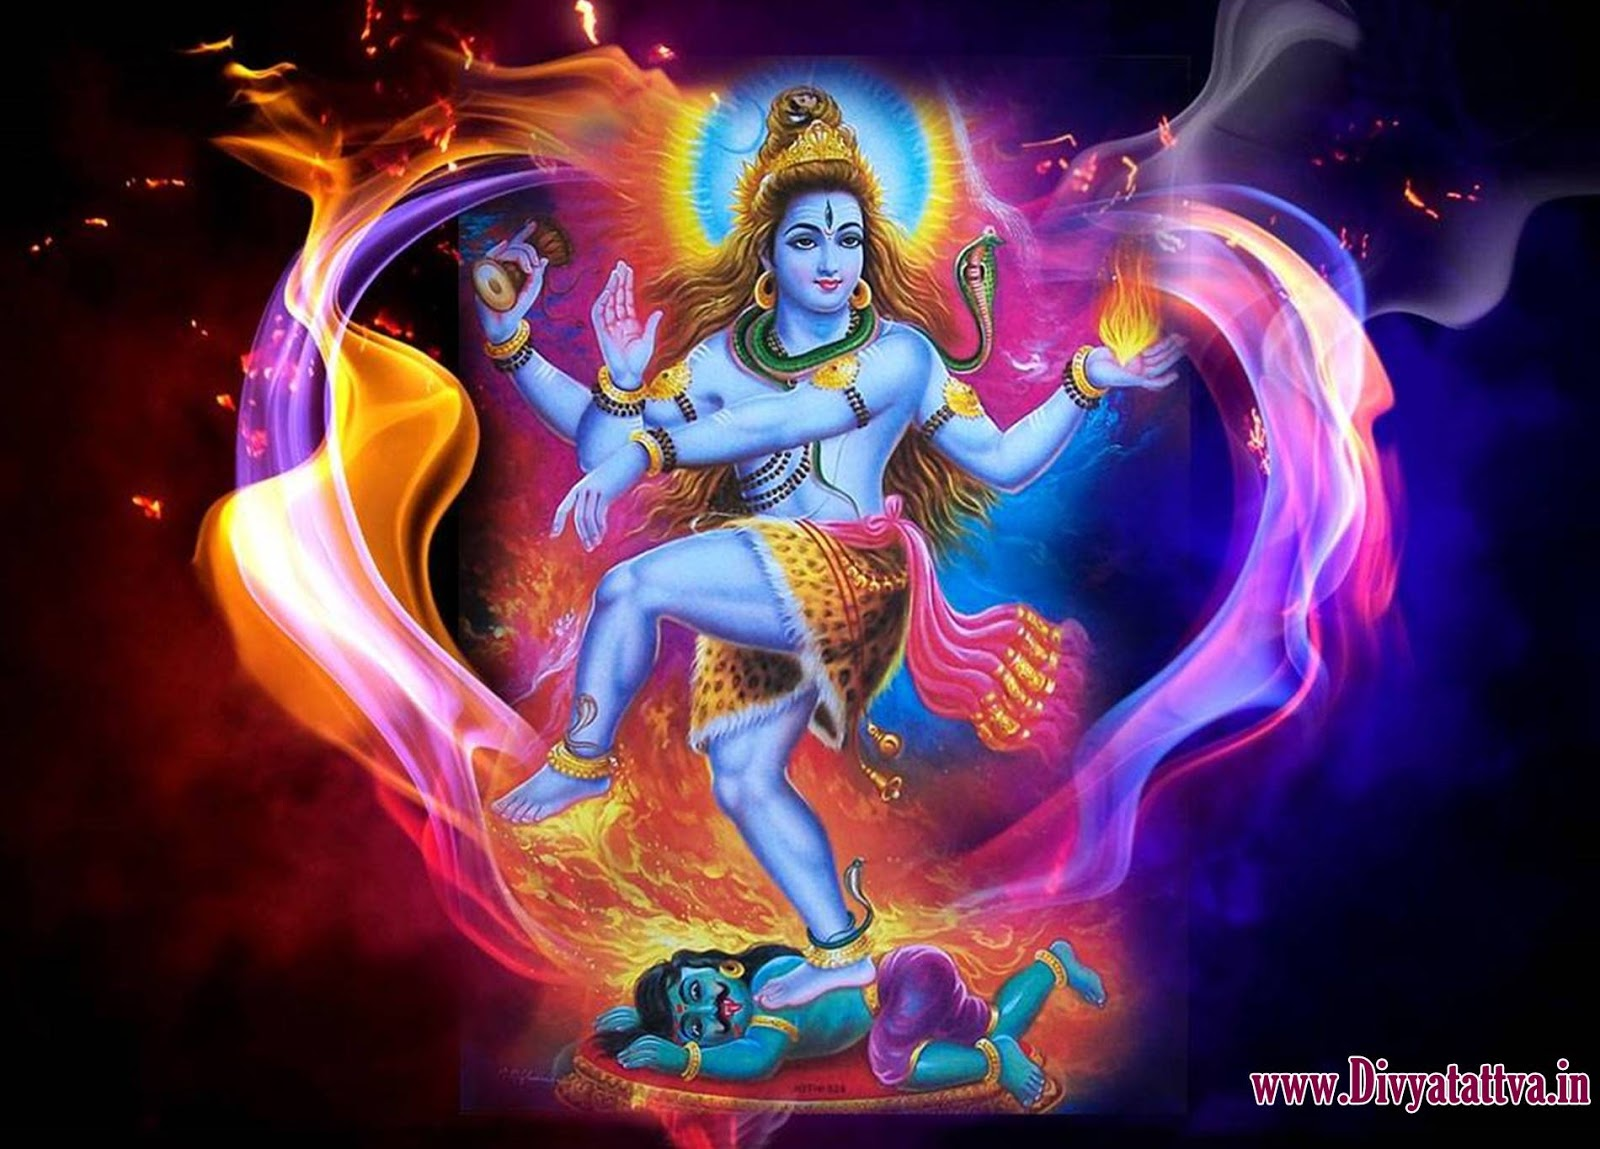 Simple Wallpaper Lord Nataraja - Lord-Shiva-Rudra-Roop-wallpapers-hindu-god-spiritual-natraja-www  Snapshot_571110.jpg